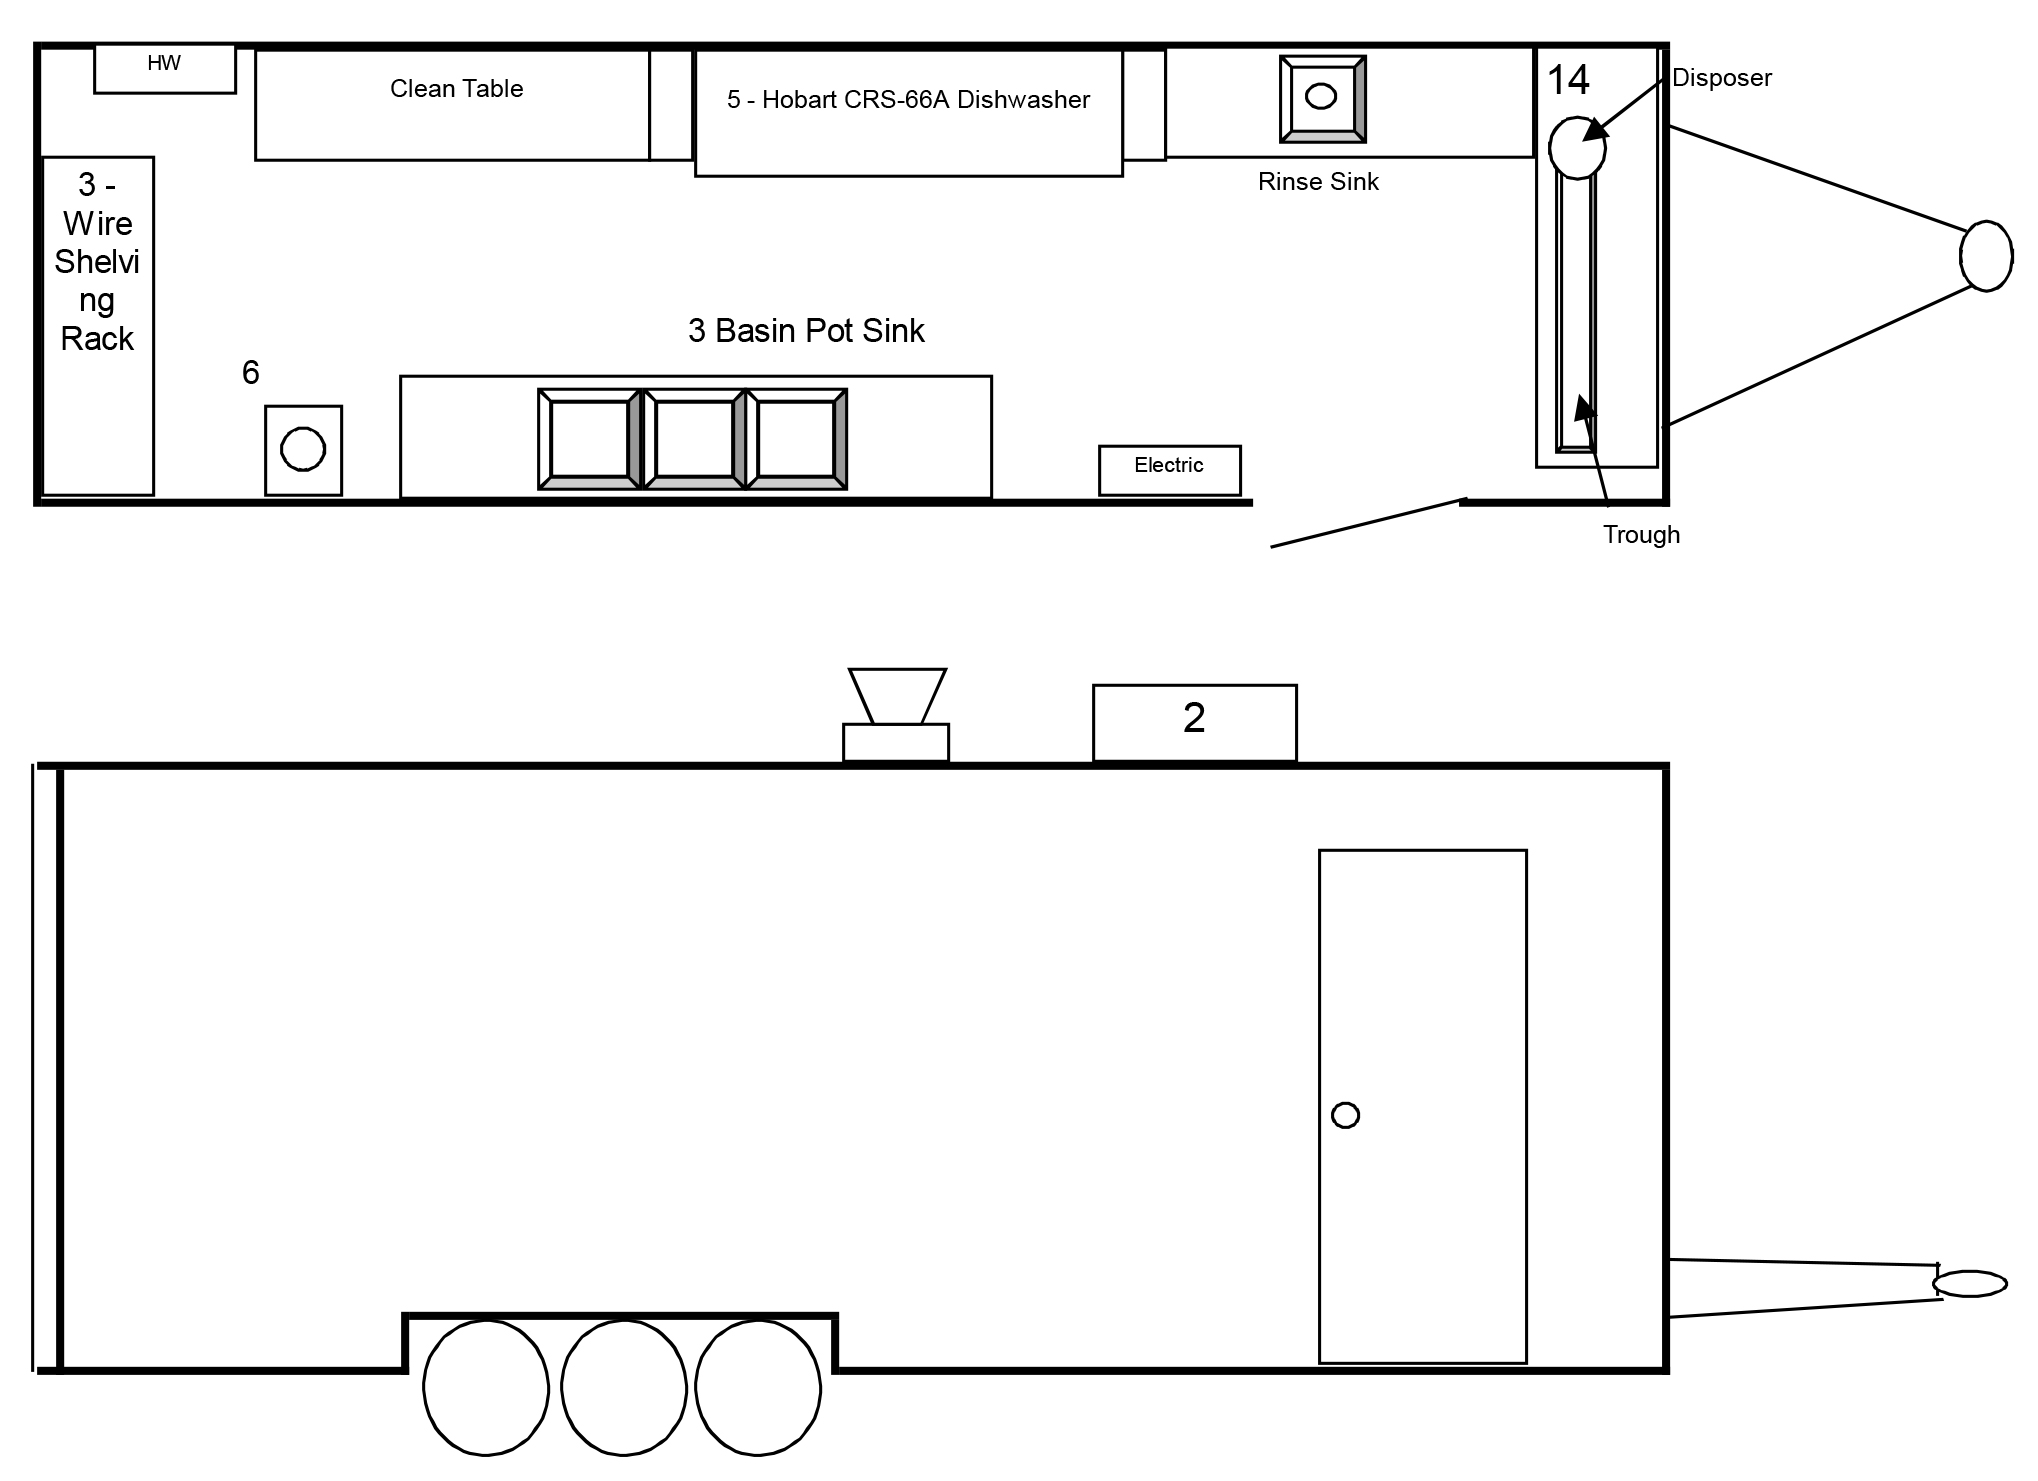 24' Dishwashing Trailer